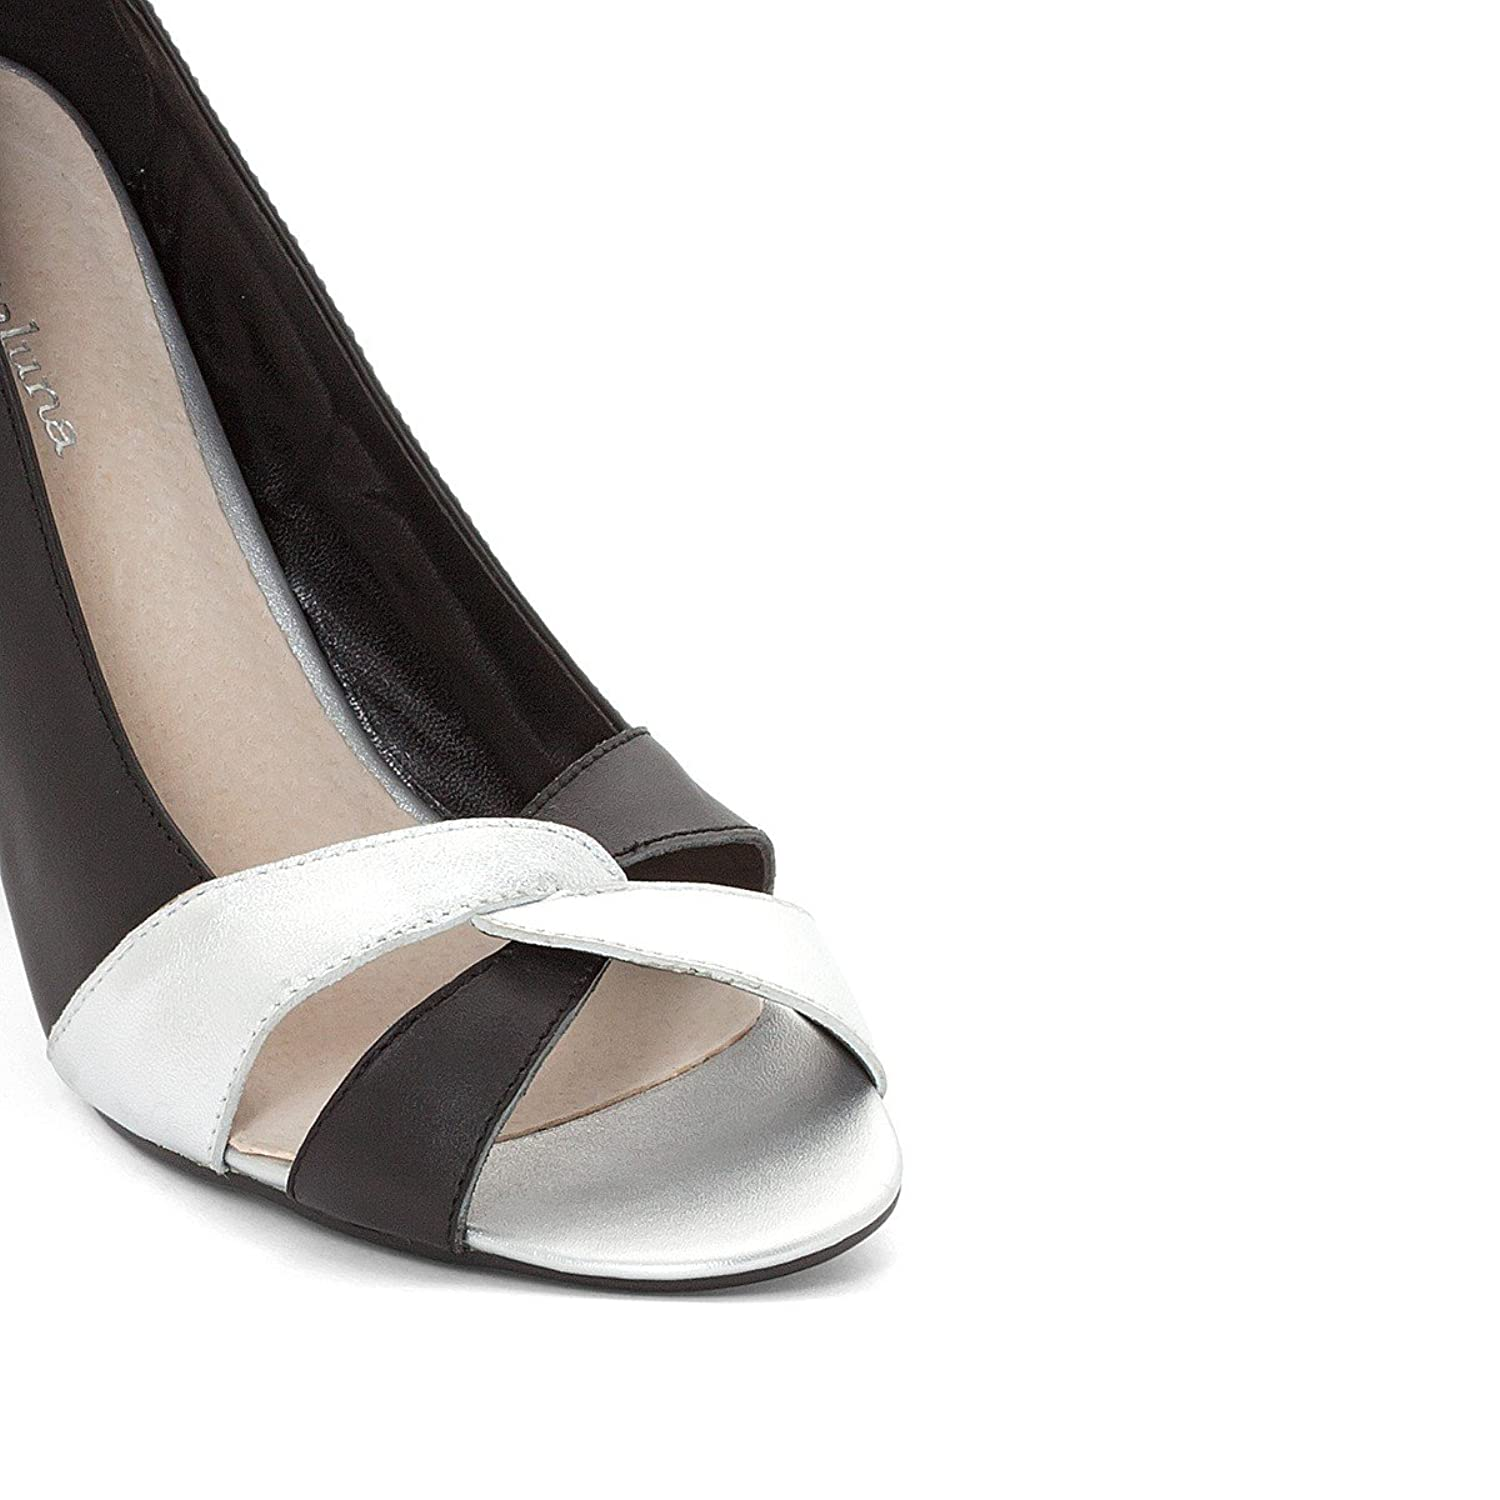 CASTALUNA Two-Tone Leather Pumps With Wide Feet countdown package online discount outlet store VWaoL6